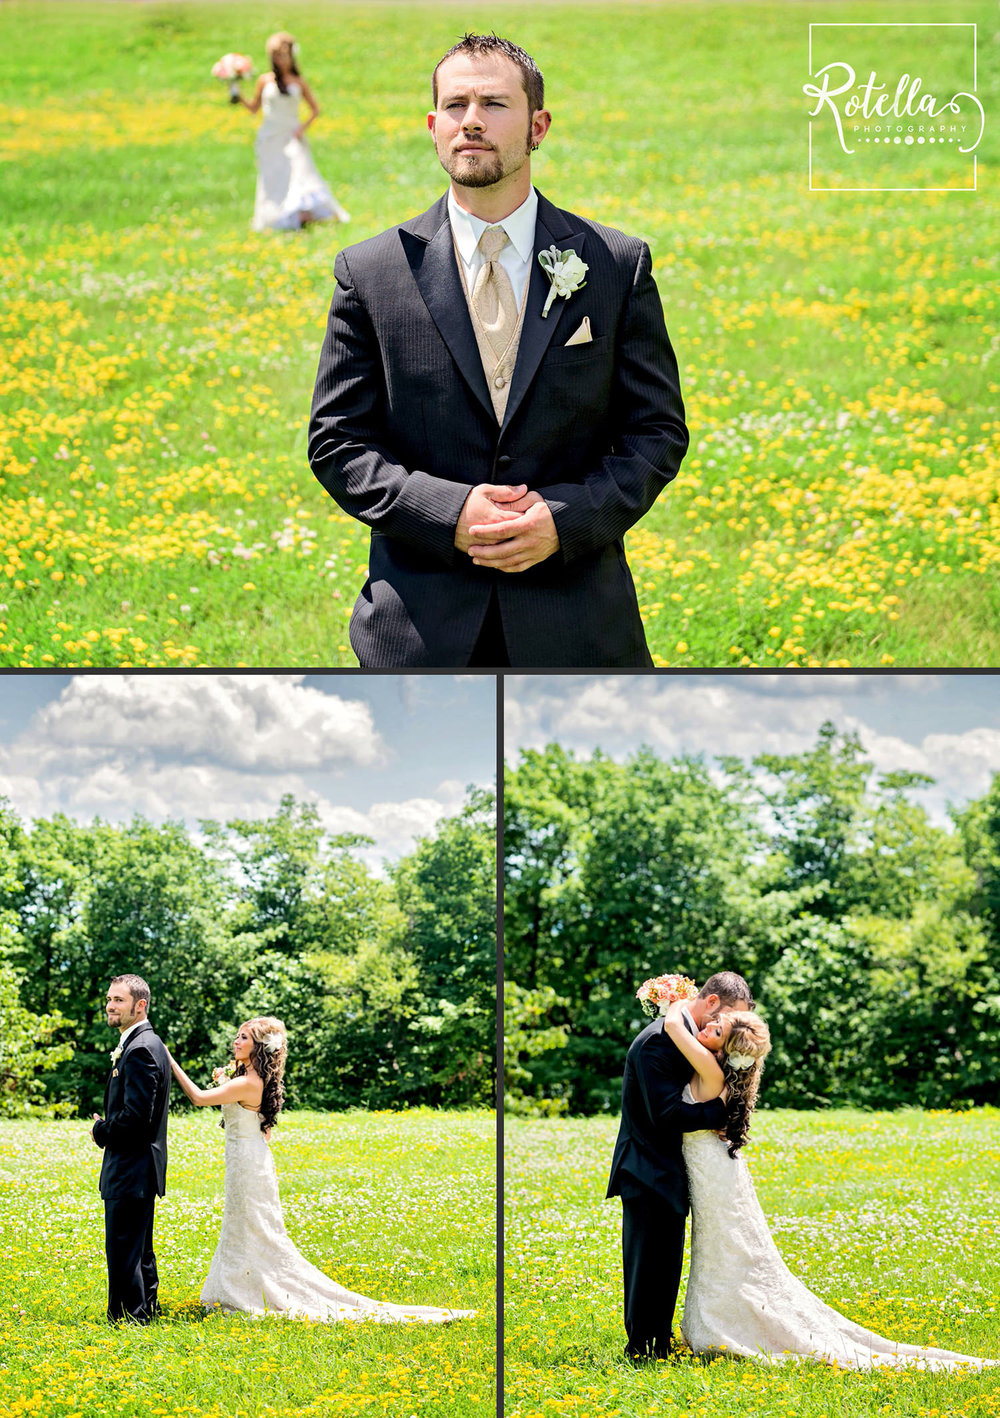 Minnesota Wedding Photography first look by Rotella Photography